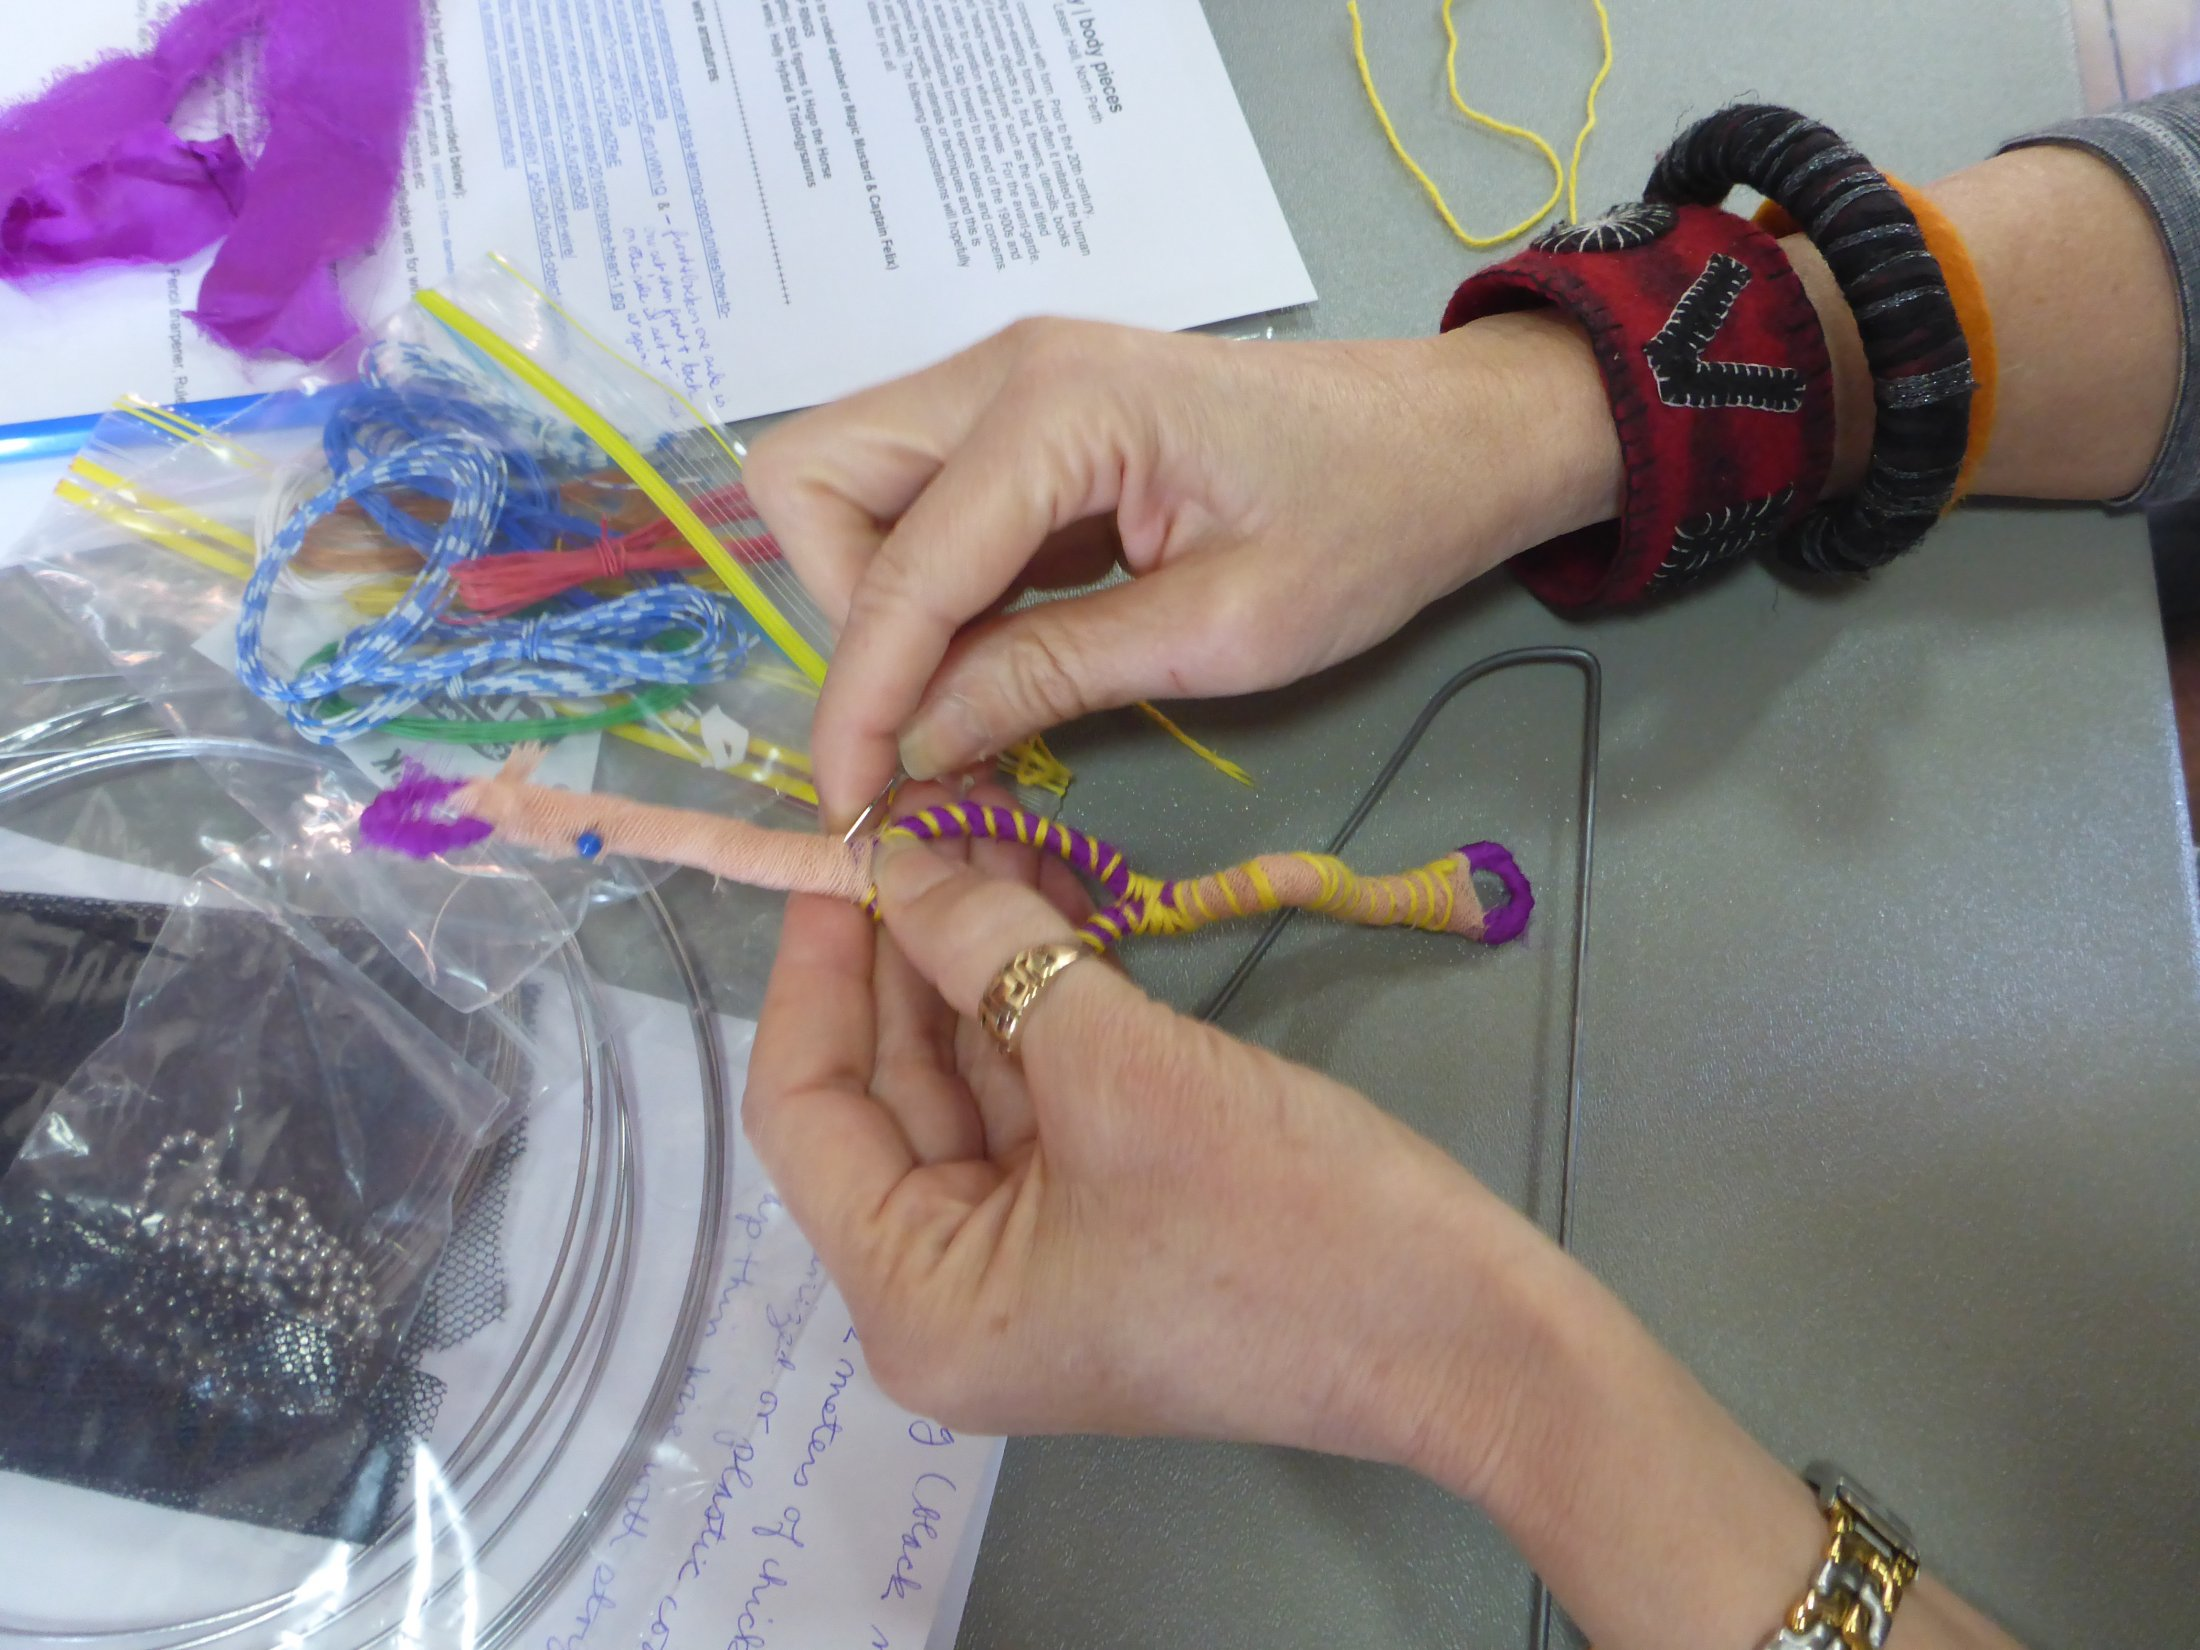 Stitching demo on wire at a textiles workshop